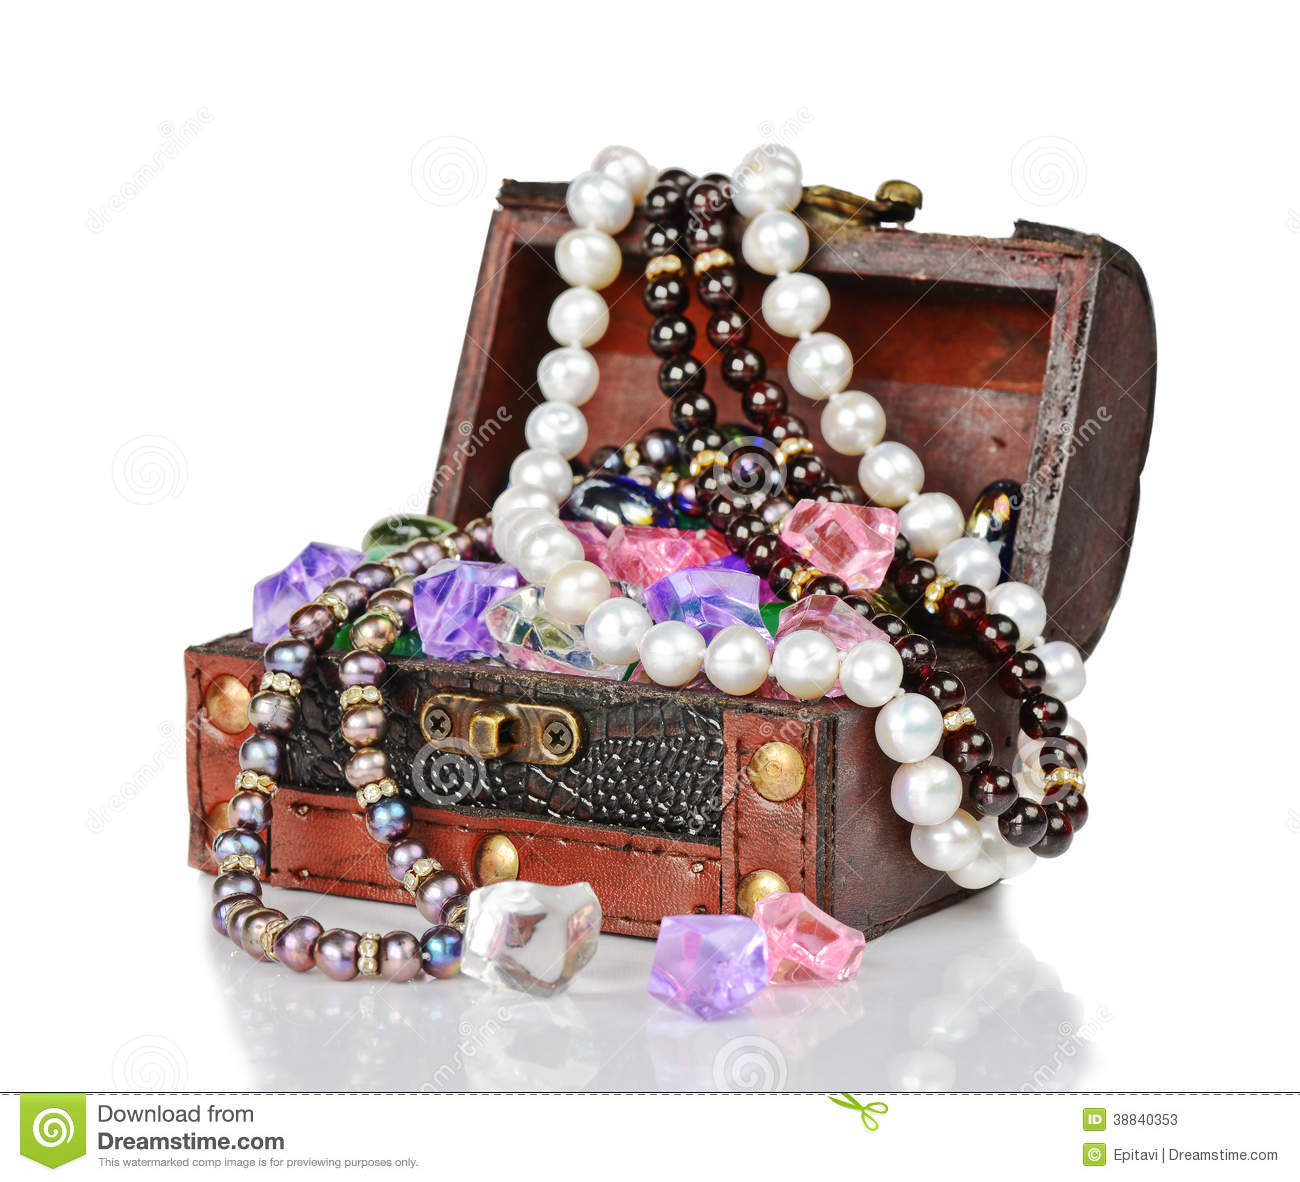 Gems In The Open Wooden Chest Stock Photo - Image: 38840353